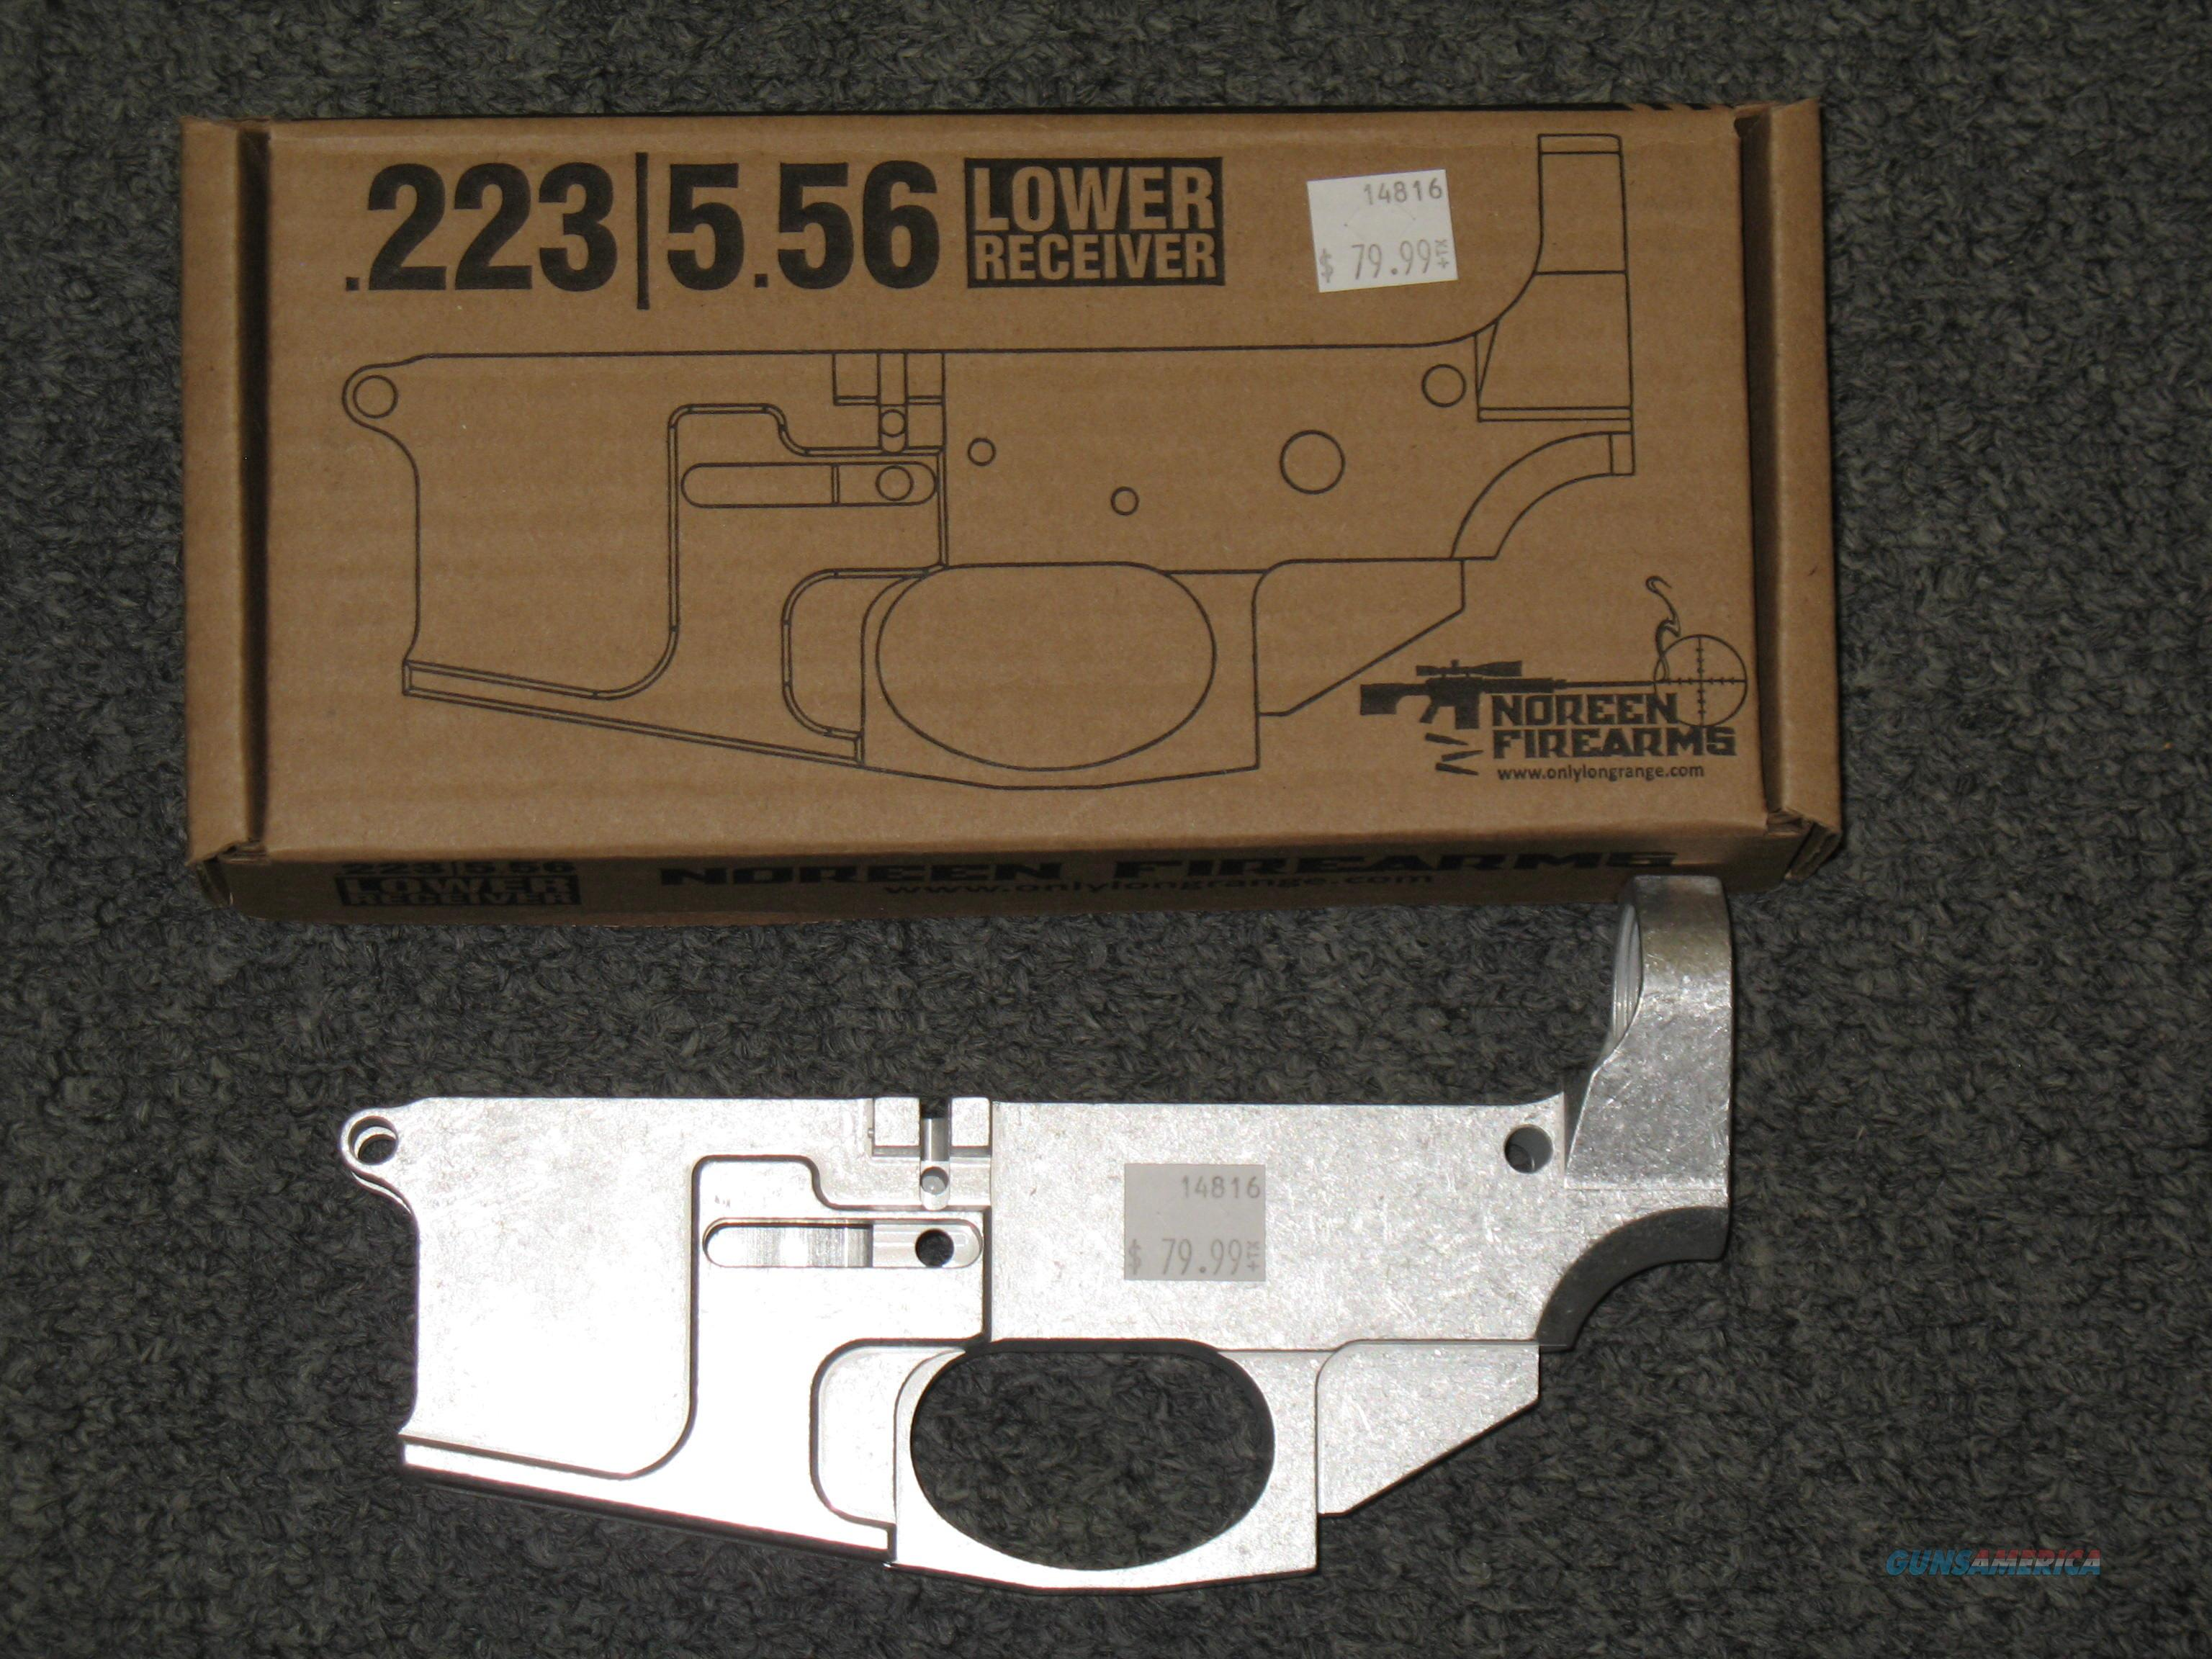 Noreen Firearms AR15 80% Billet Lower Receiver (stripped lower Not complete)  Guns > Rifles > AR-15 Rifles - Small Manufacturers > Lower Only